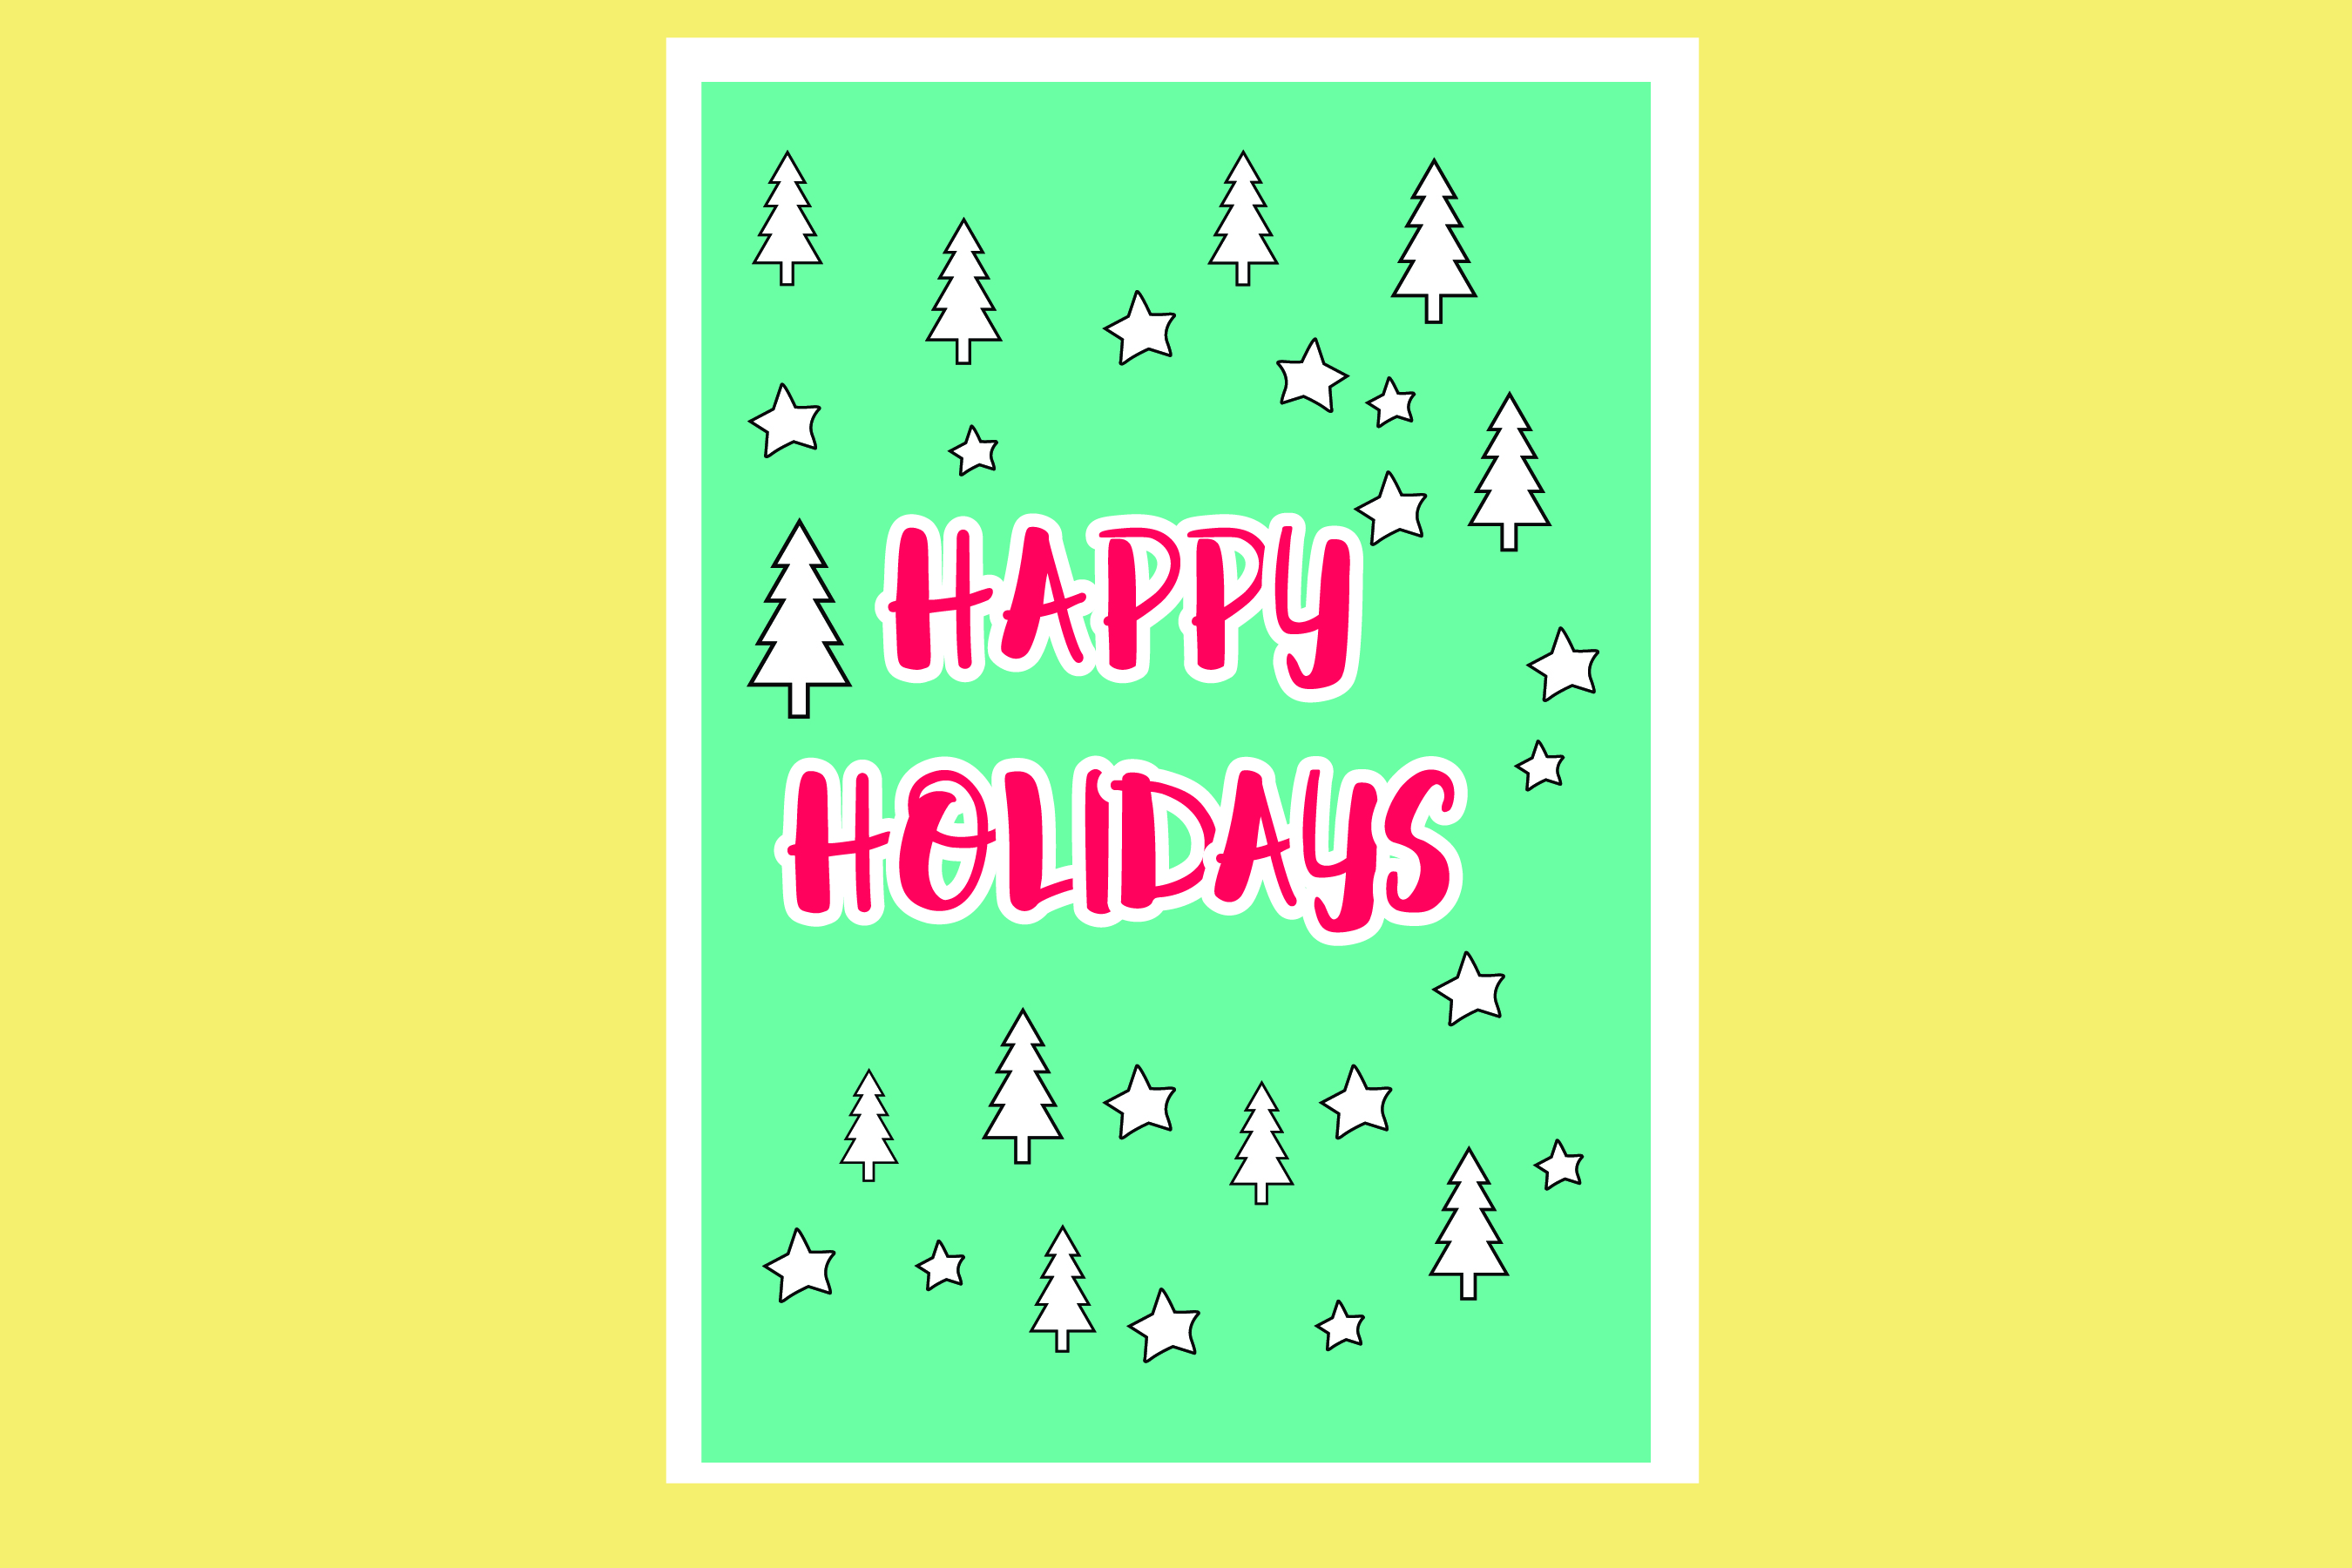 AA25-Christmas Greetings cards 6 Designs - SVG Bundle example image 5